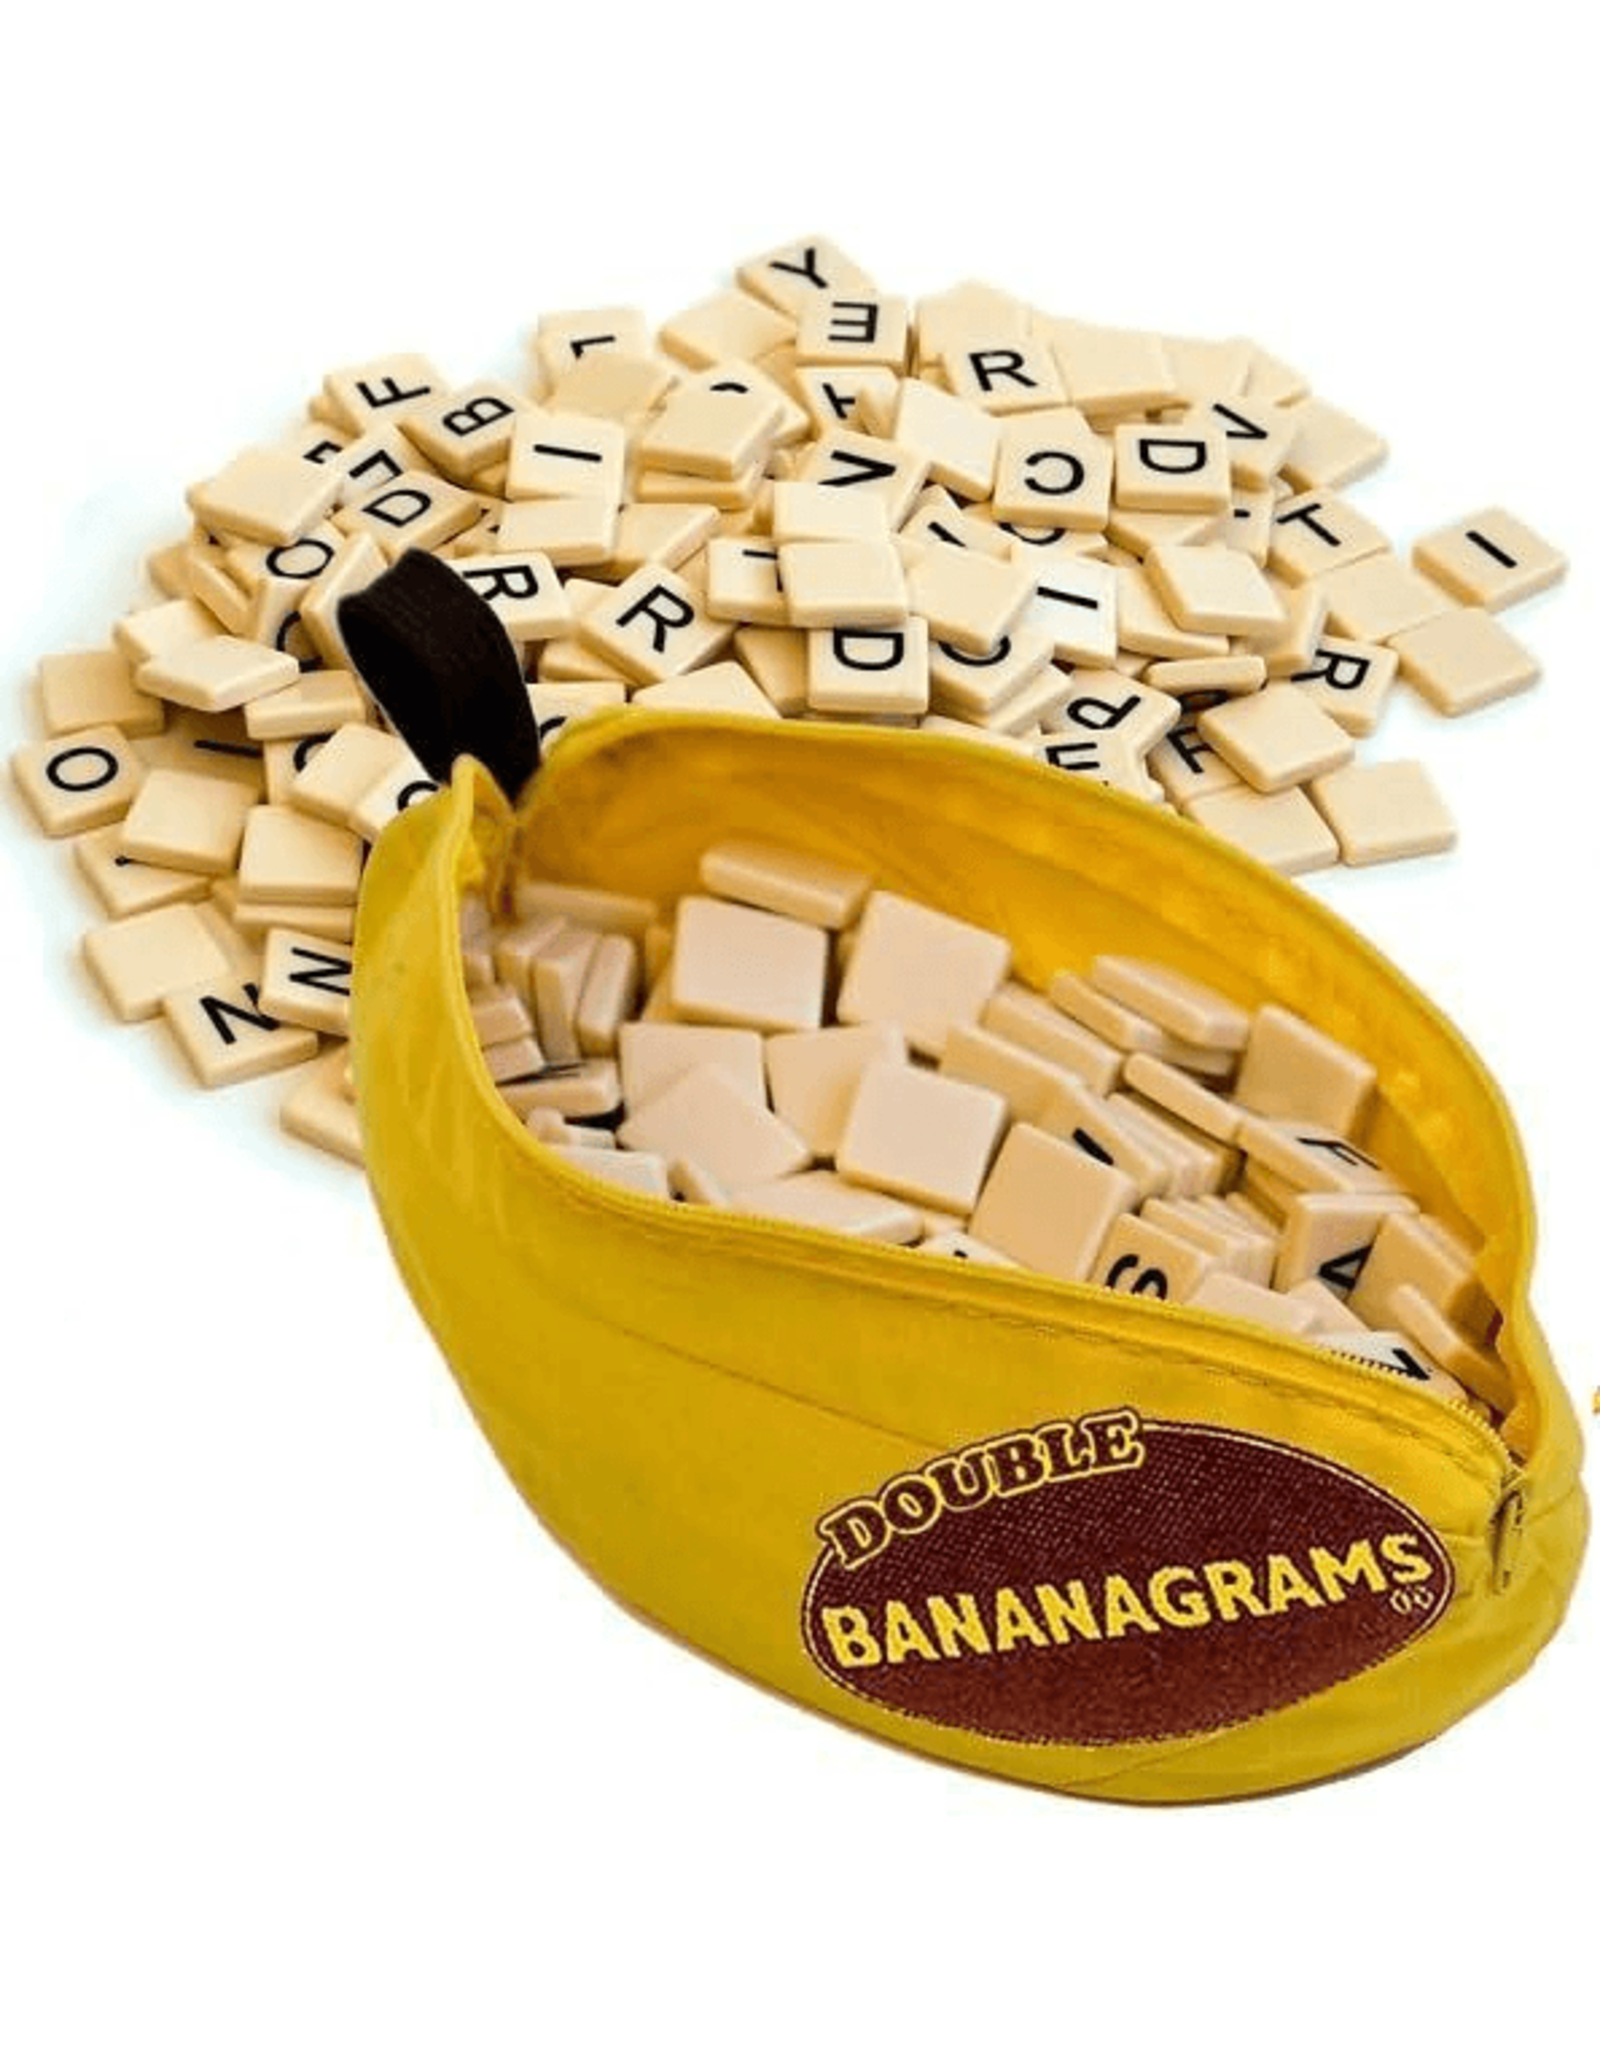 Bananagrams Bananagrams: Double